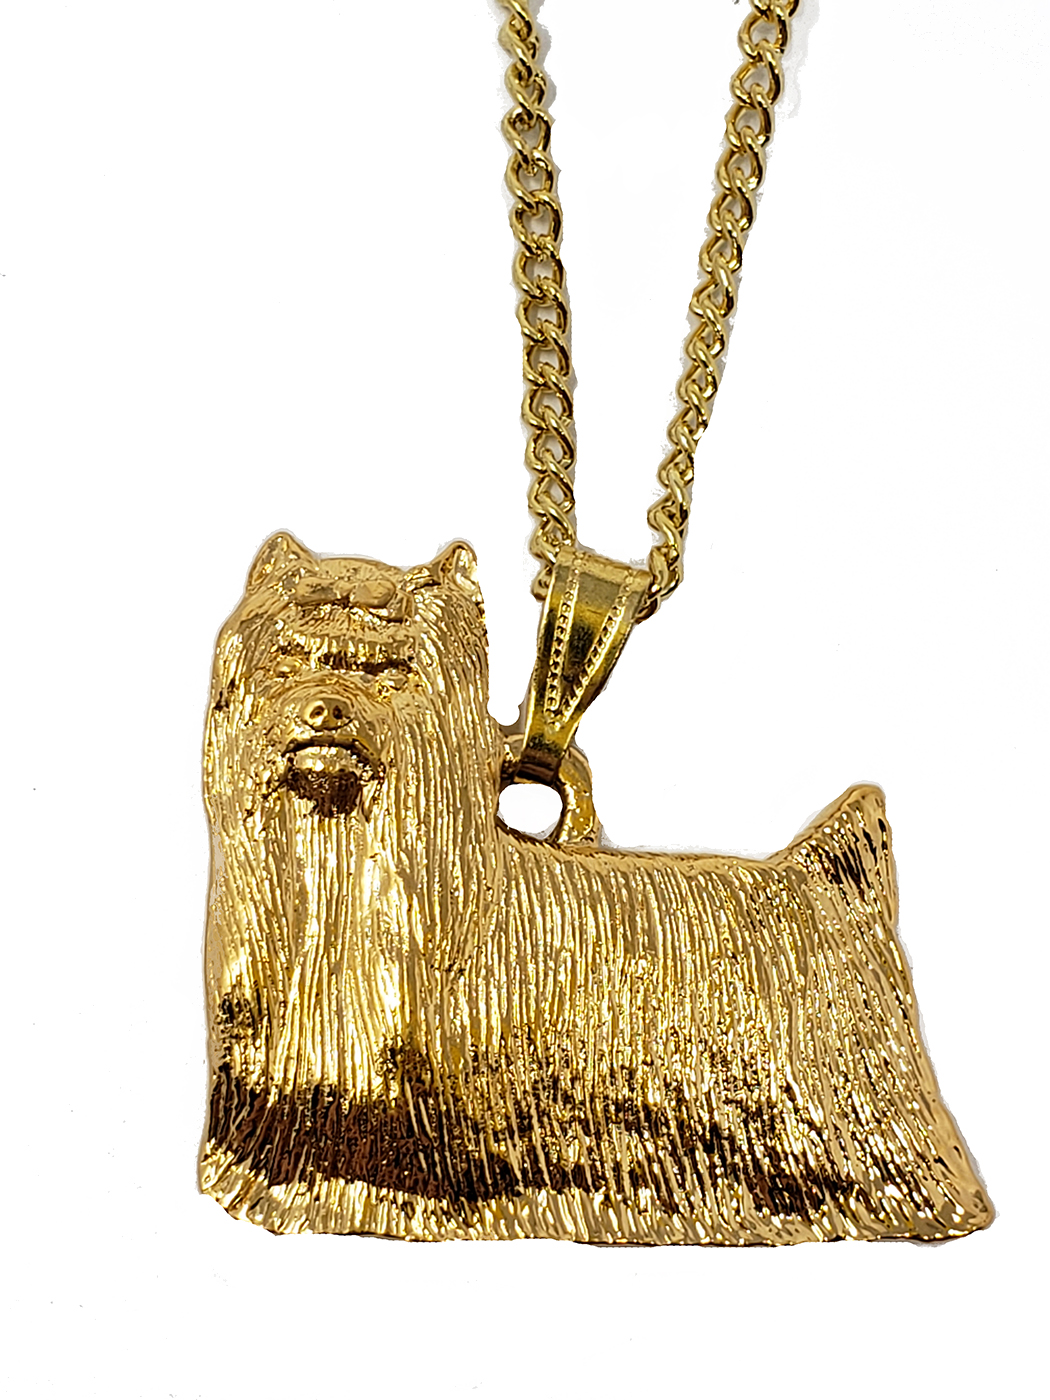 Yorkie 24K Gold Plated Pendant with Necklace